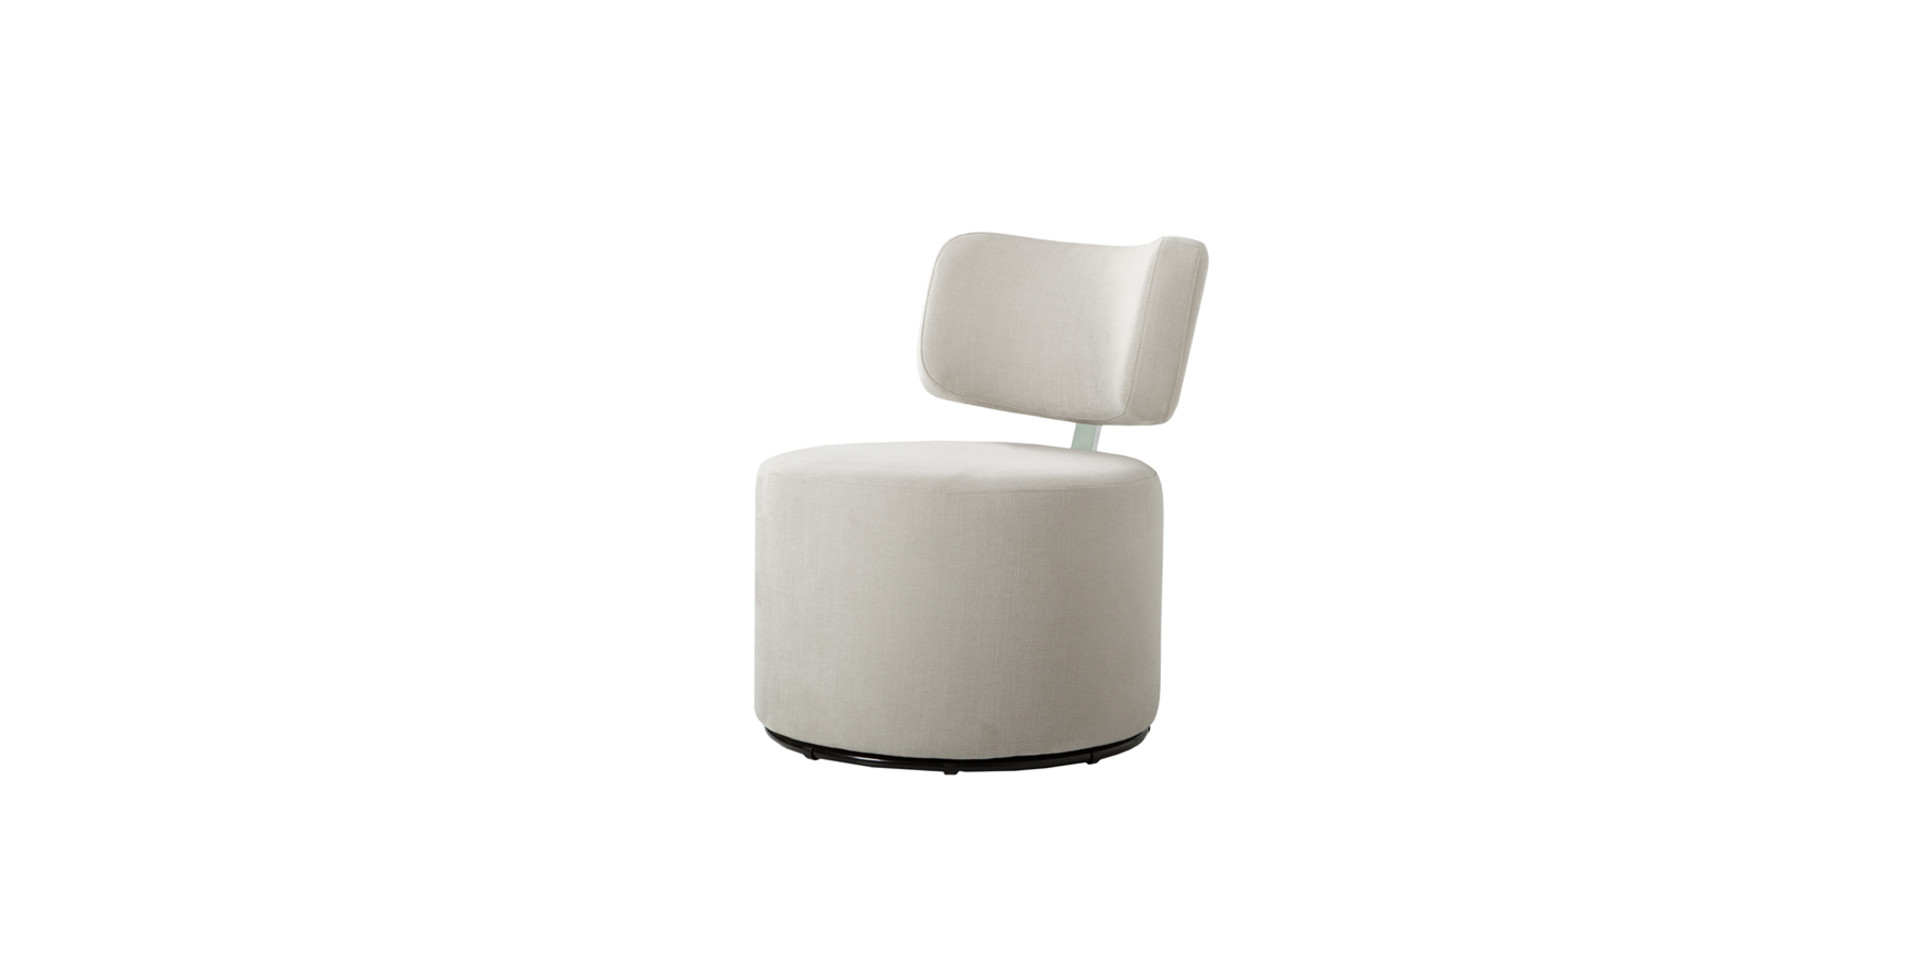 sits-mokka-fauteuil-armchair_swivel_caleido3790_light_beige_3